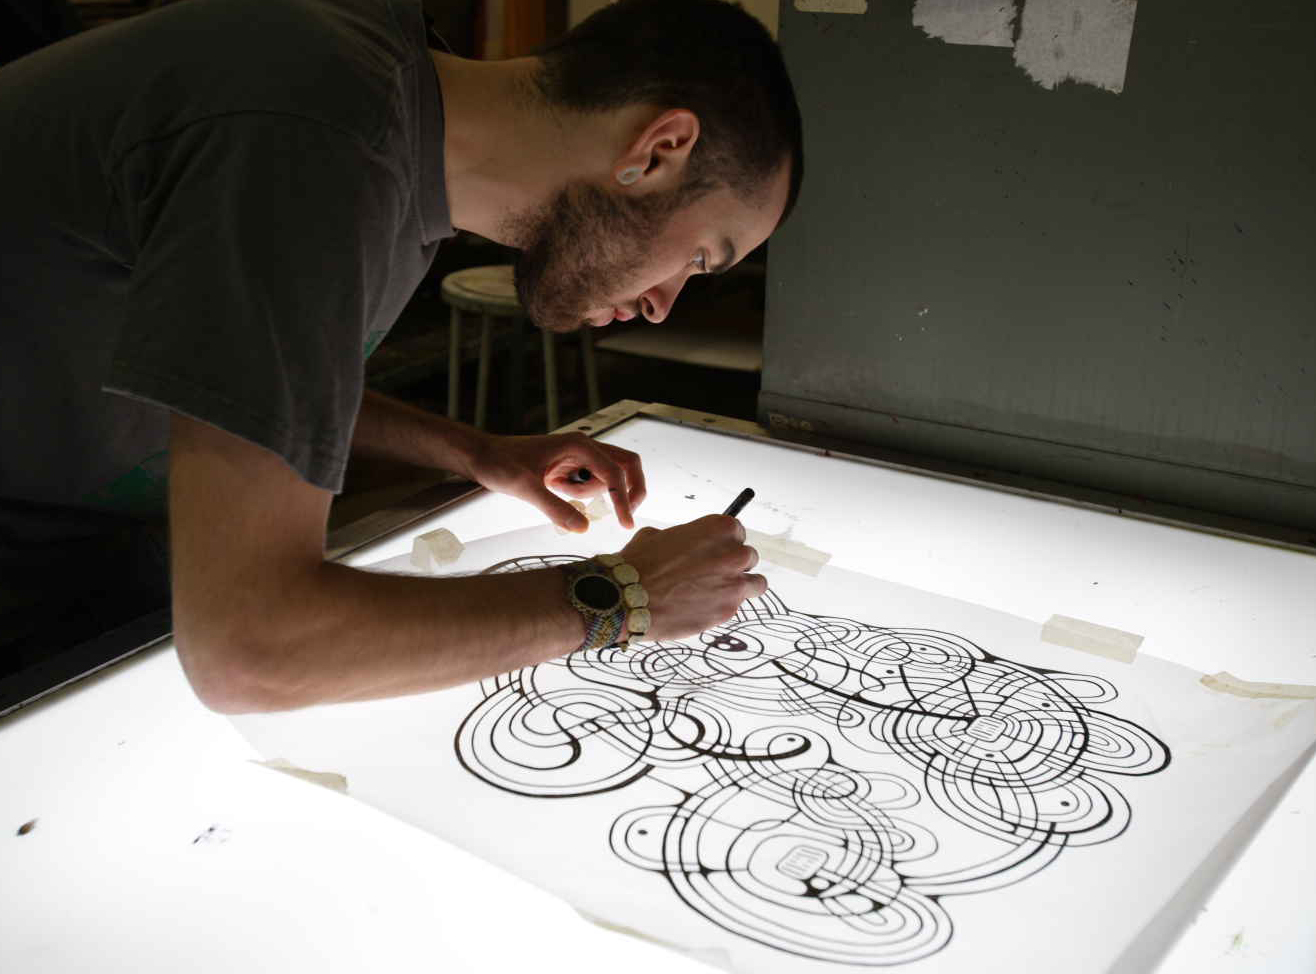 illustration Illustration the illustrator is a fine artist who illustrates for books, magazines, newsletters, websites, brochures, stamps, and any commercial item.